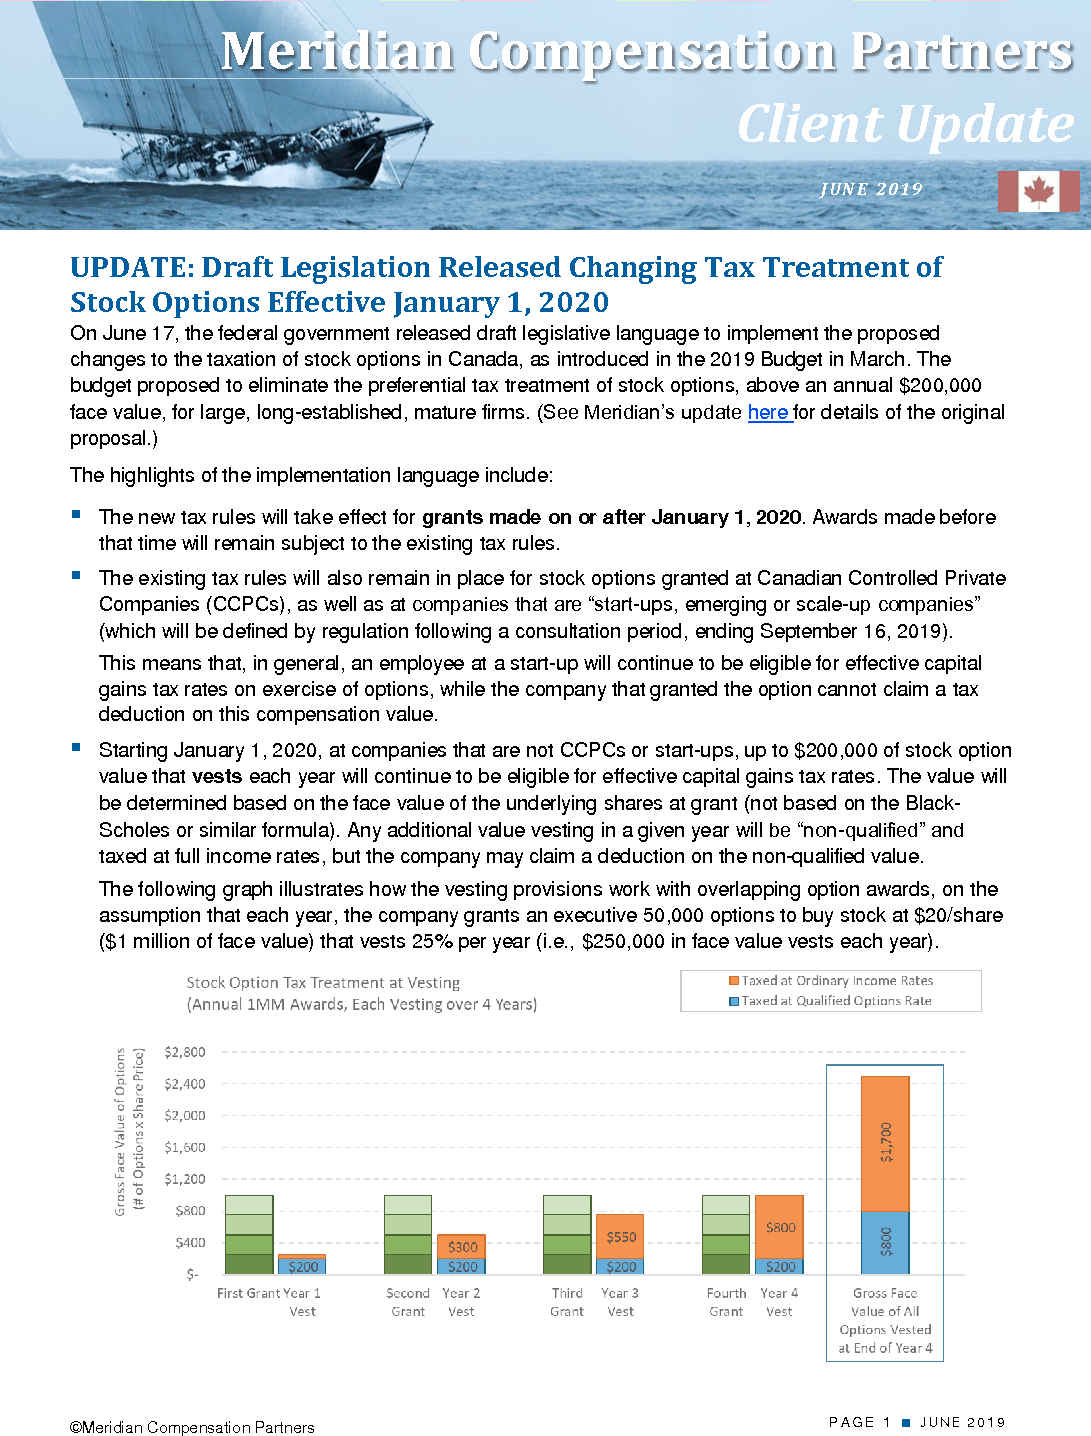 UPDATE: Draft Legislation Released Changing Tax Treatment of Stock Options Effective January 1, 2020 (PDF)